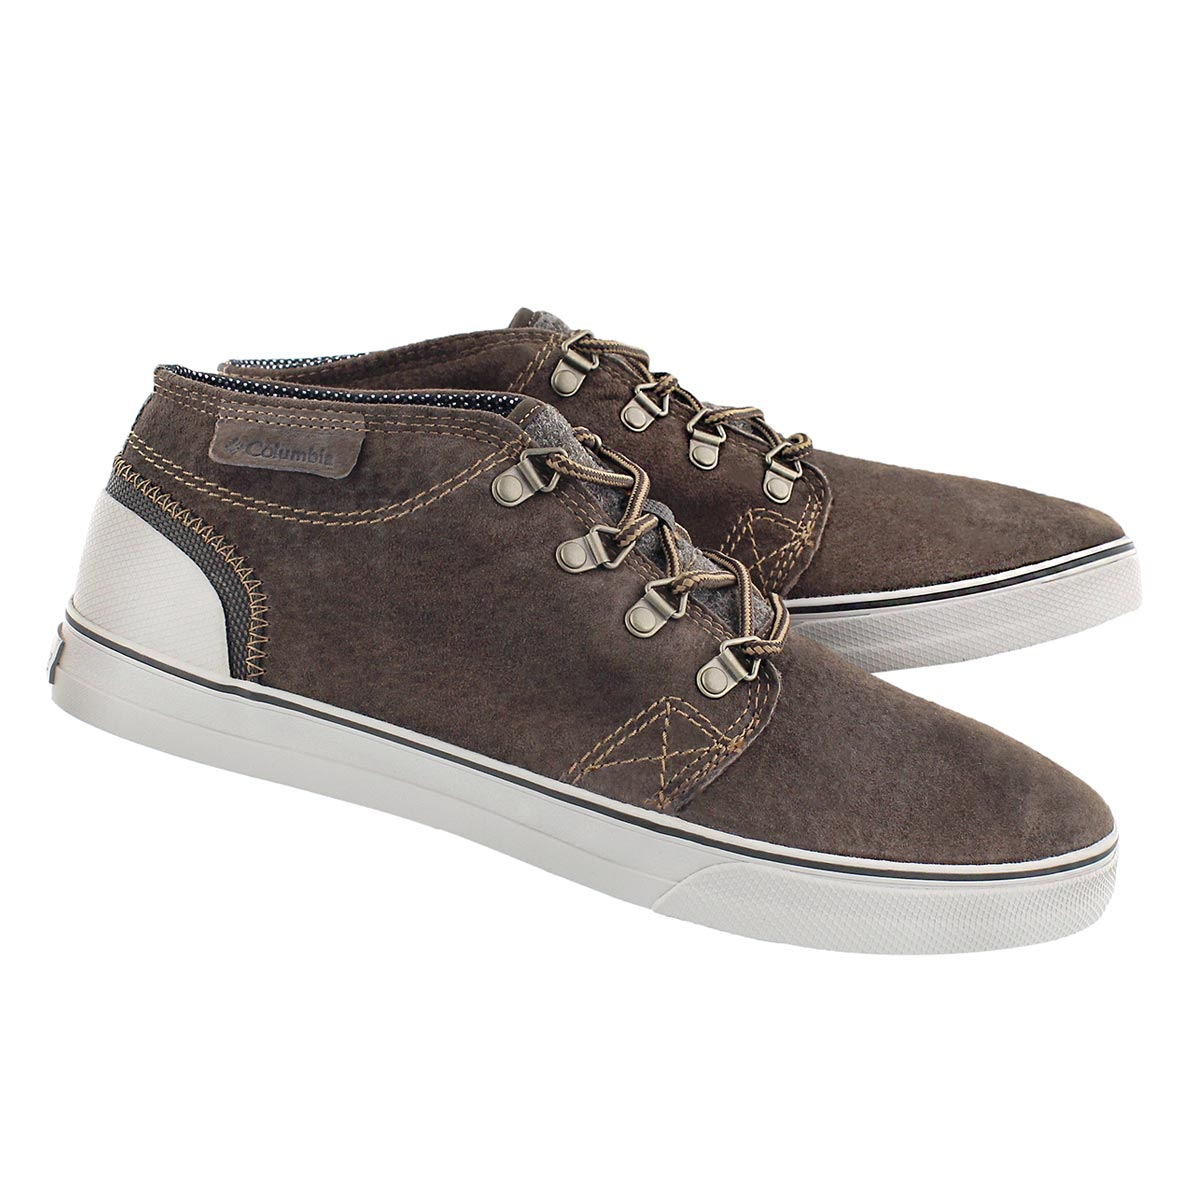 Mns Vulc Half Dome brown casual shoe